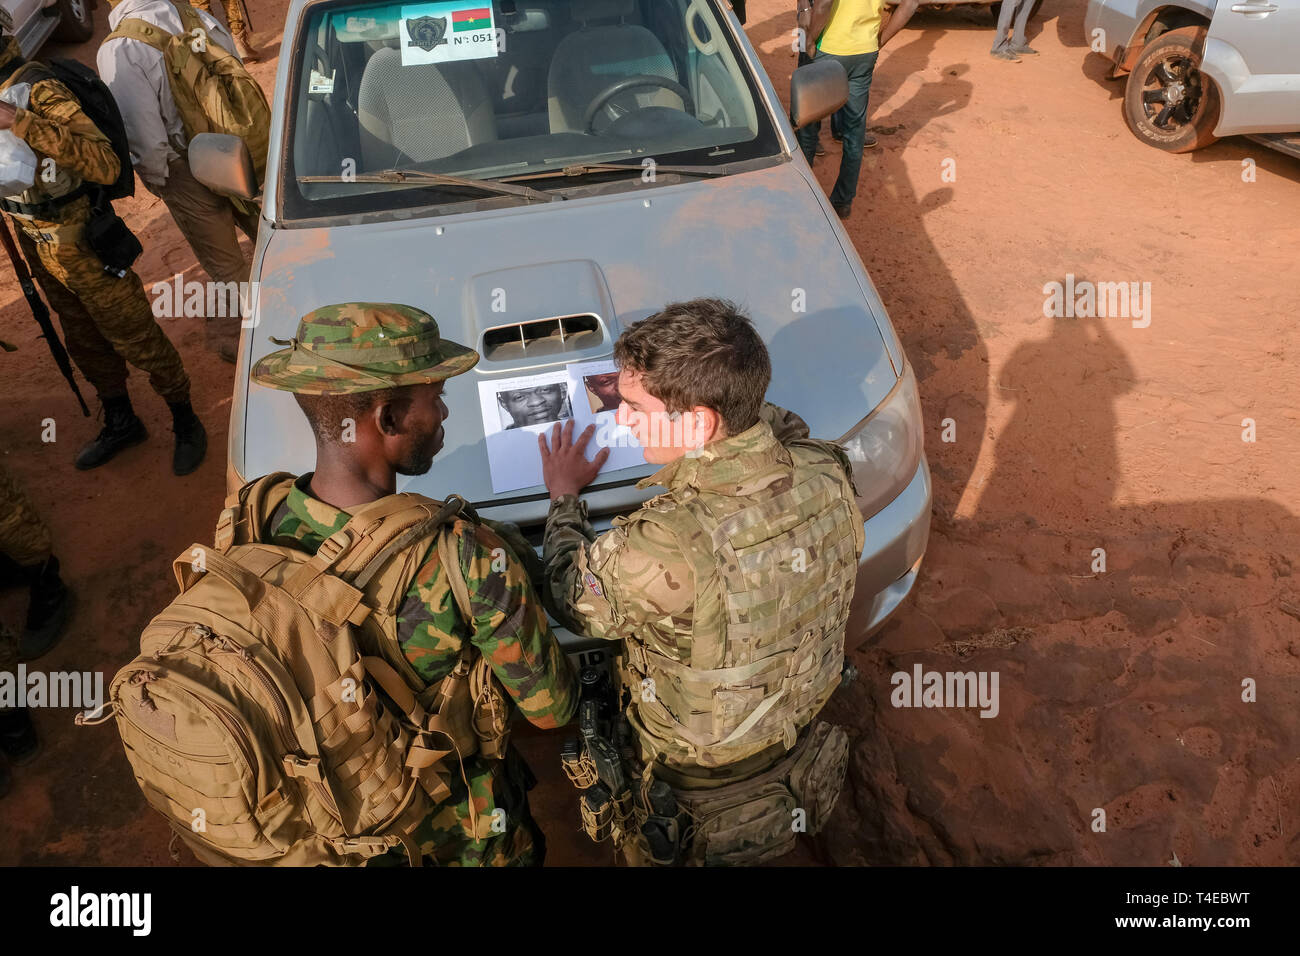 Nigerian Soldiers Stock Photos & Nigerian Soldiers Stock Images - Alamy